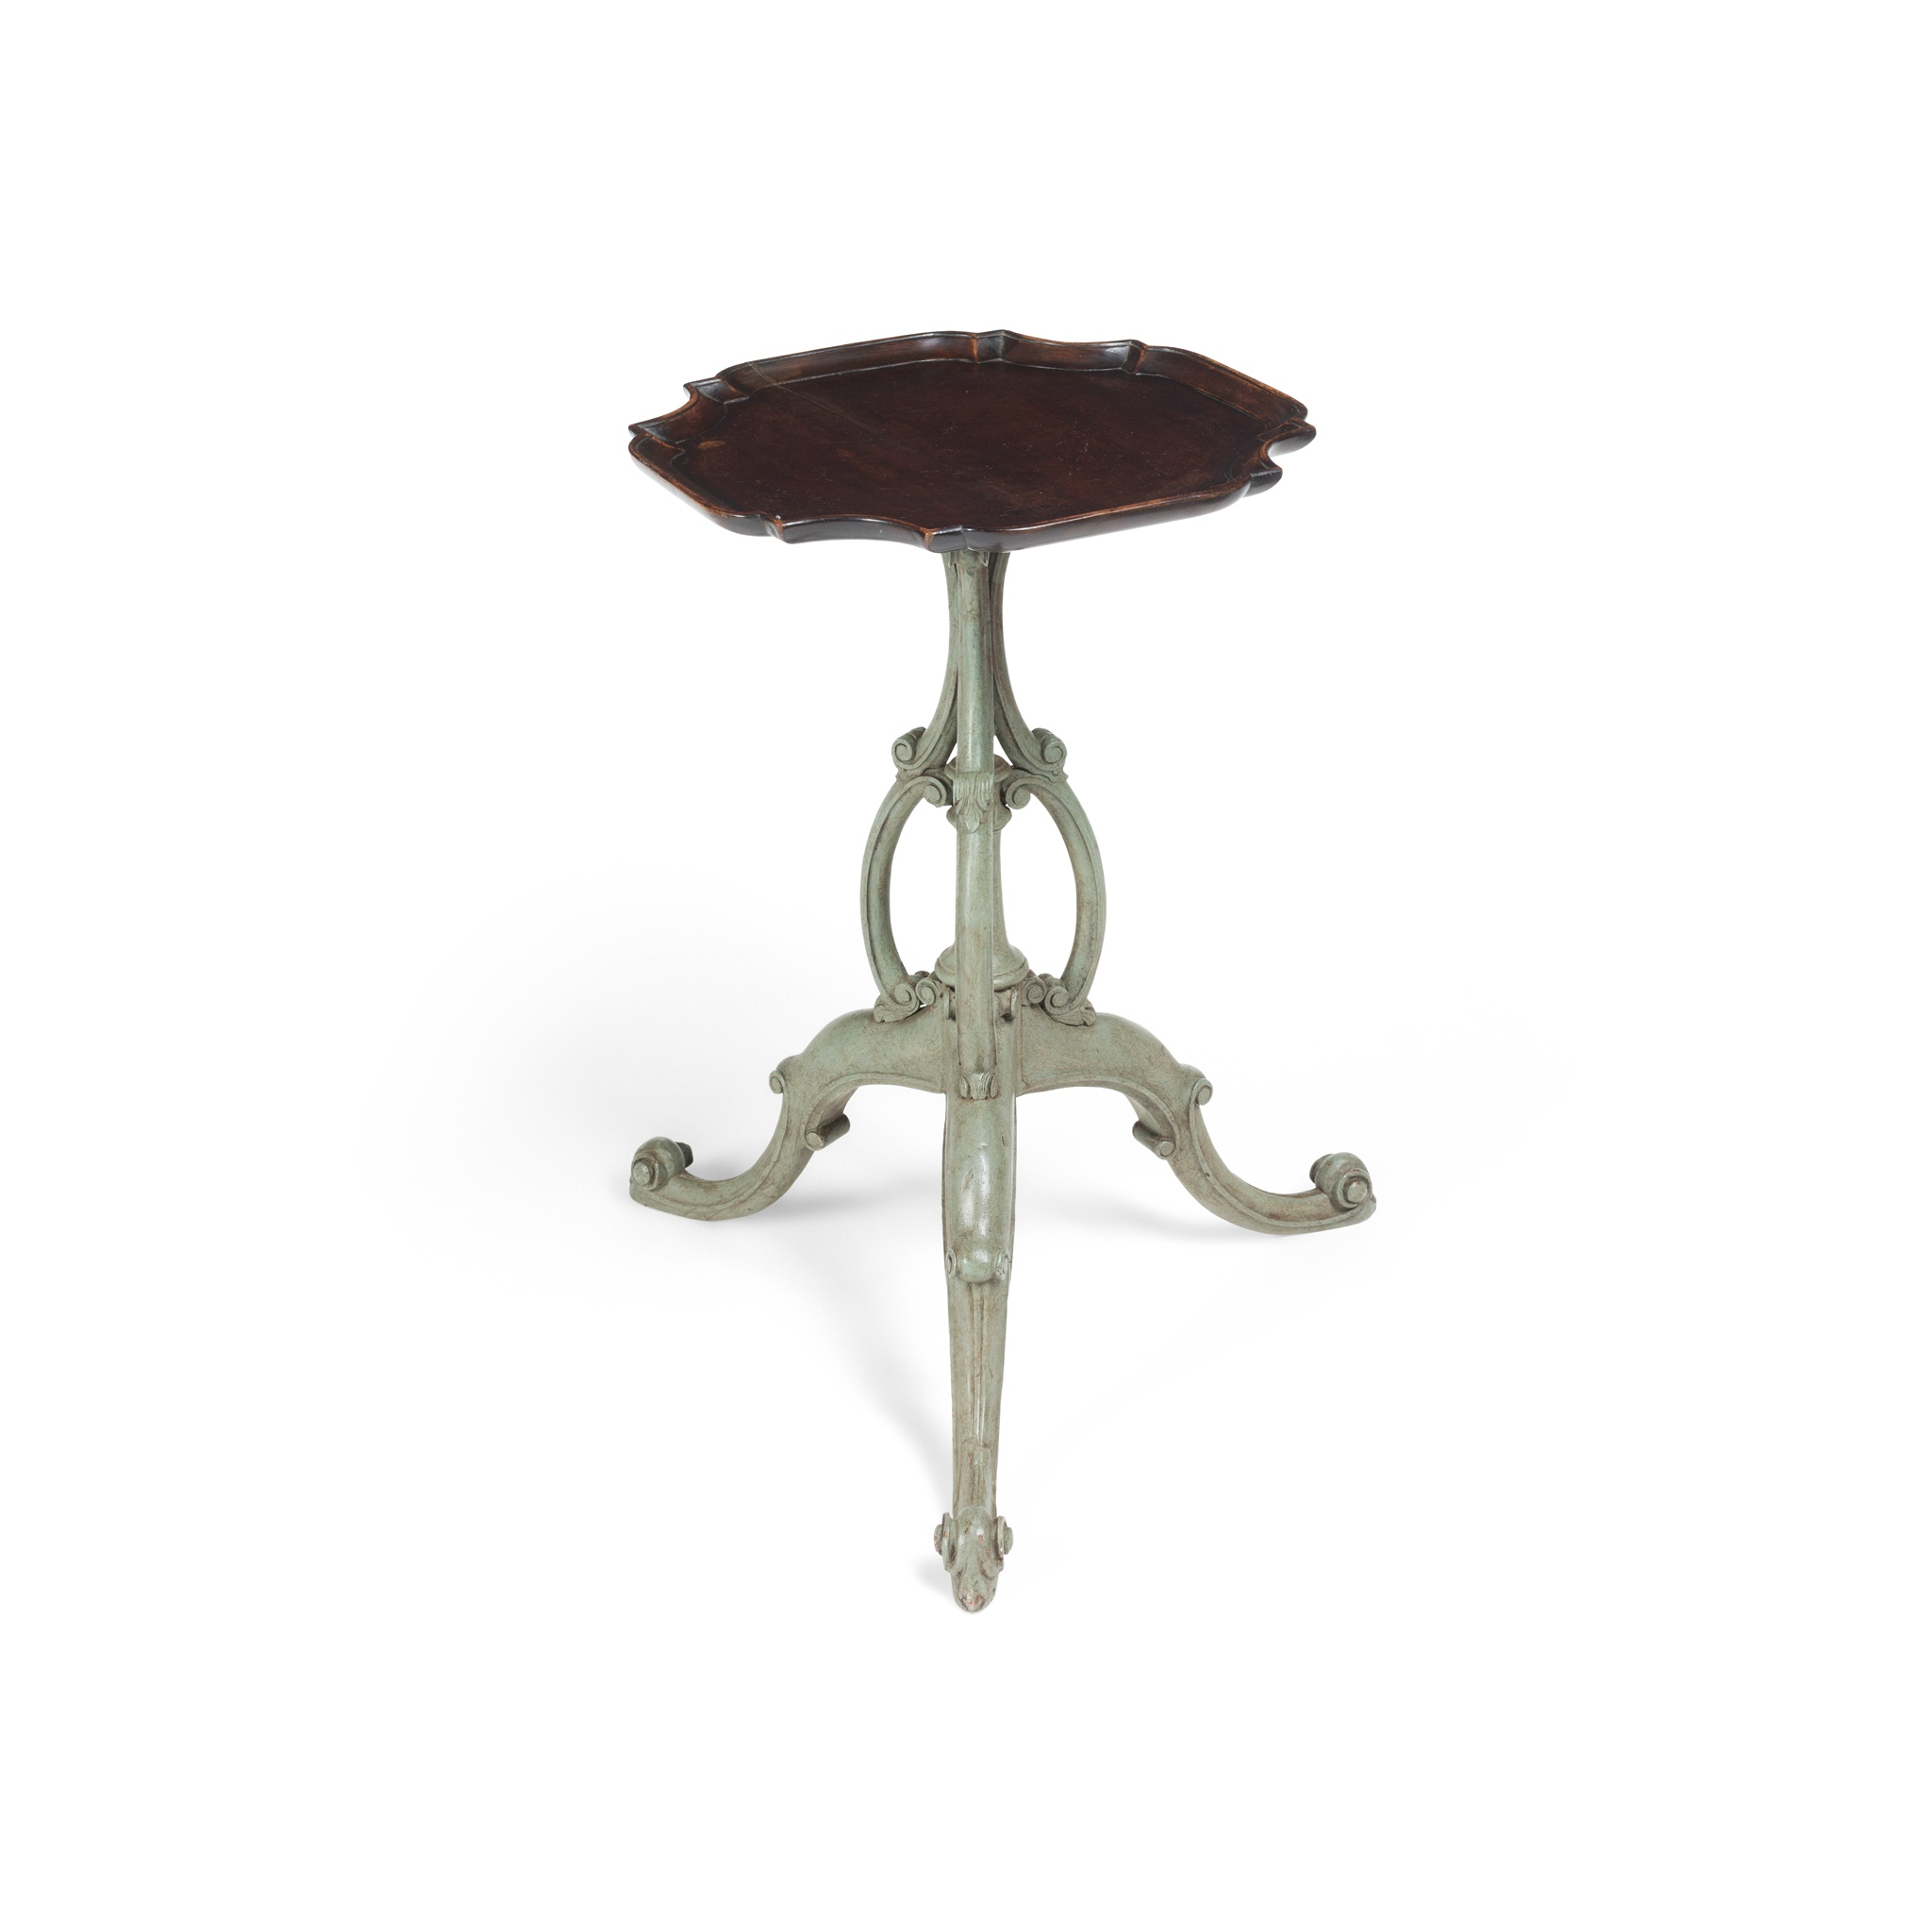 GEORGIAN STYLE MAHOGANY AND PAINTED WINE TABLE 19TH CENTURY INCORPORATING SOME EARLY ELEMENTS